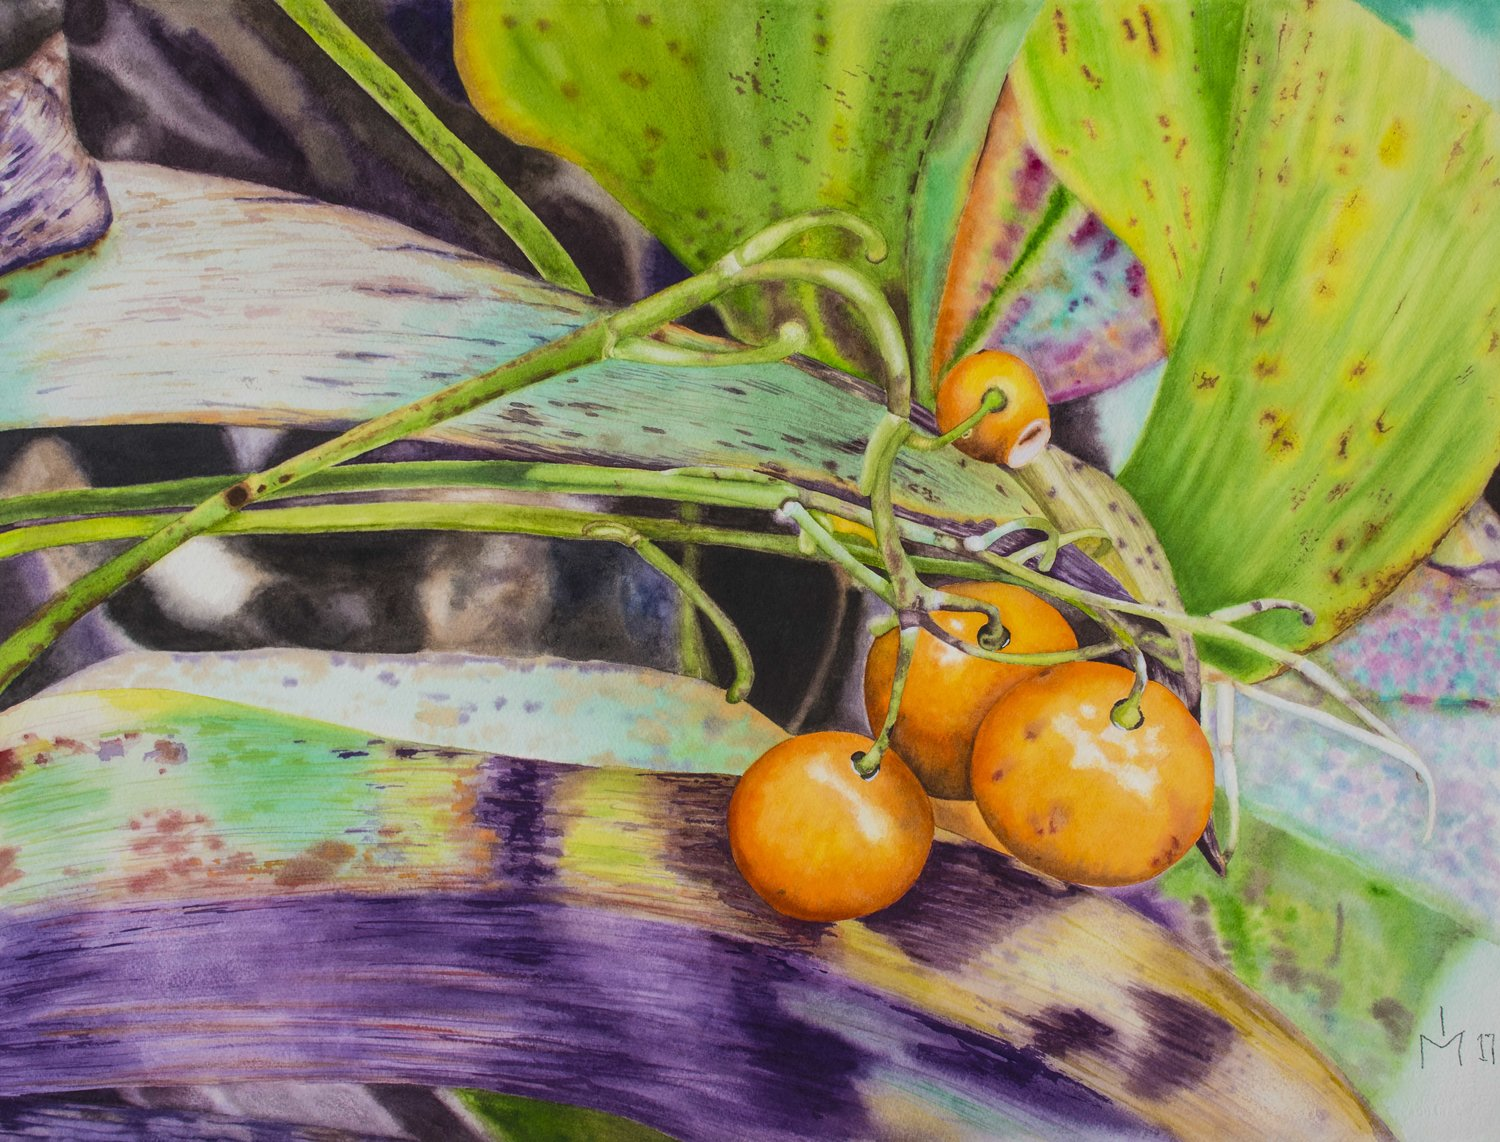 'Lily of the valley berries', Eduvigis (Inma) Medina, Watercolour on paper, 73 x 57 cm